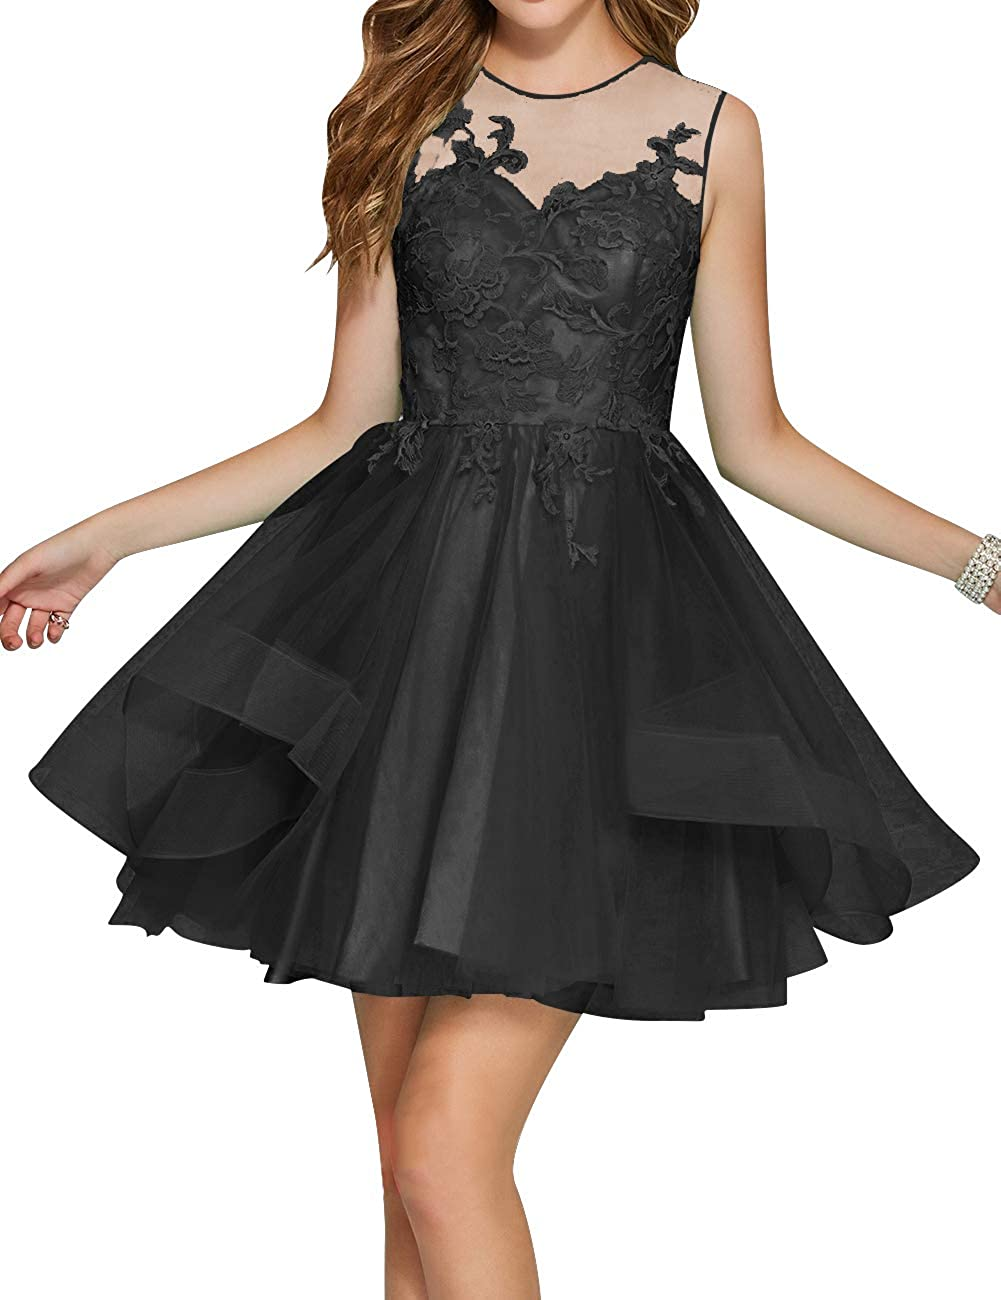 Black Uther Junior Tulle Prom Homecoming Cocktail Dresses Short Scoop Neck Bridesmaid Dress